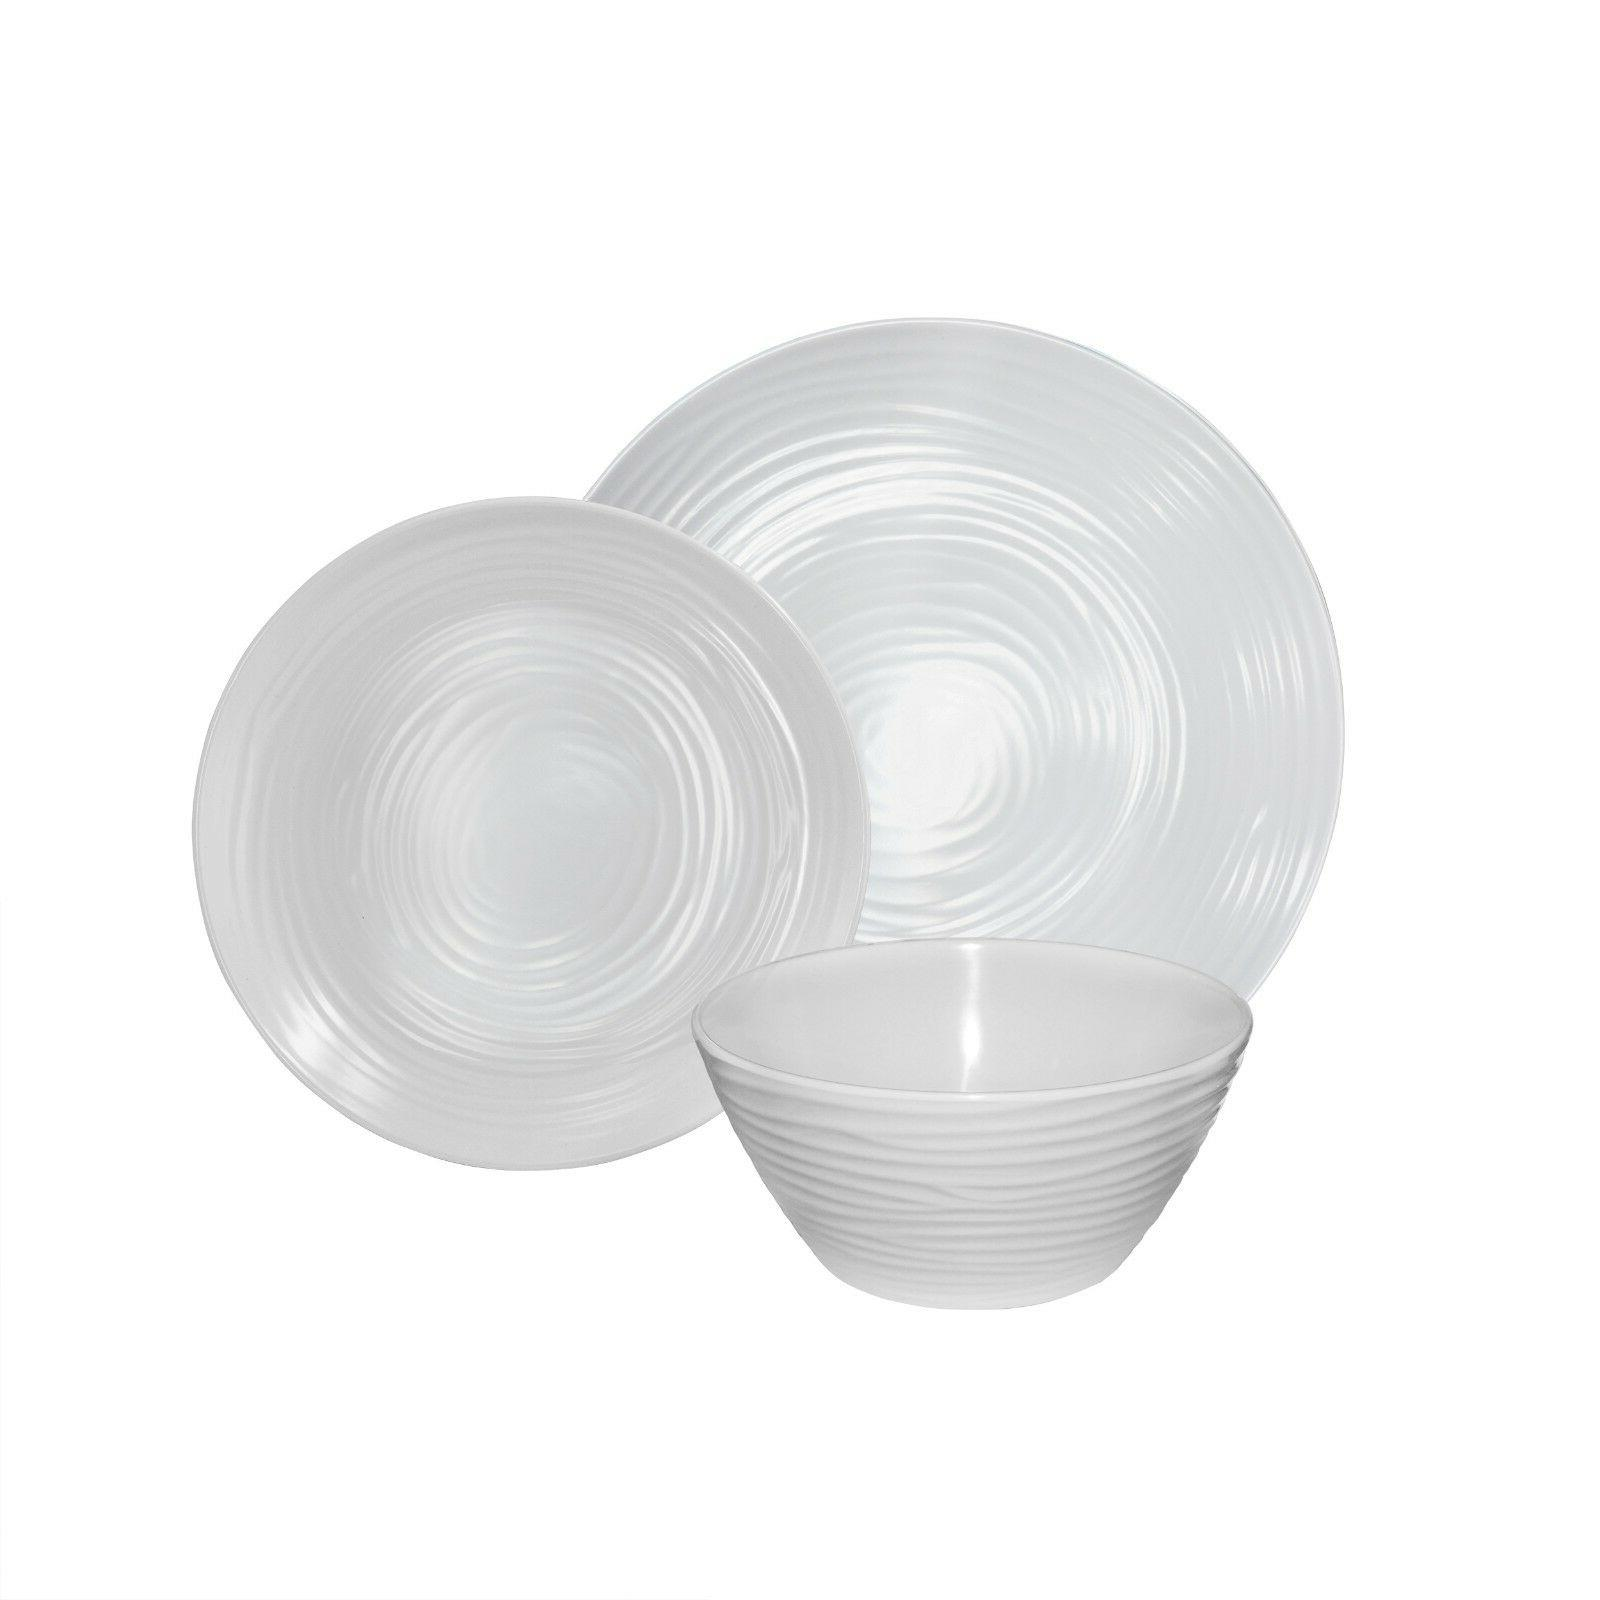 Parhoma 24 Piece White Plastic Melamine Set People